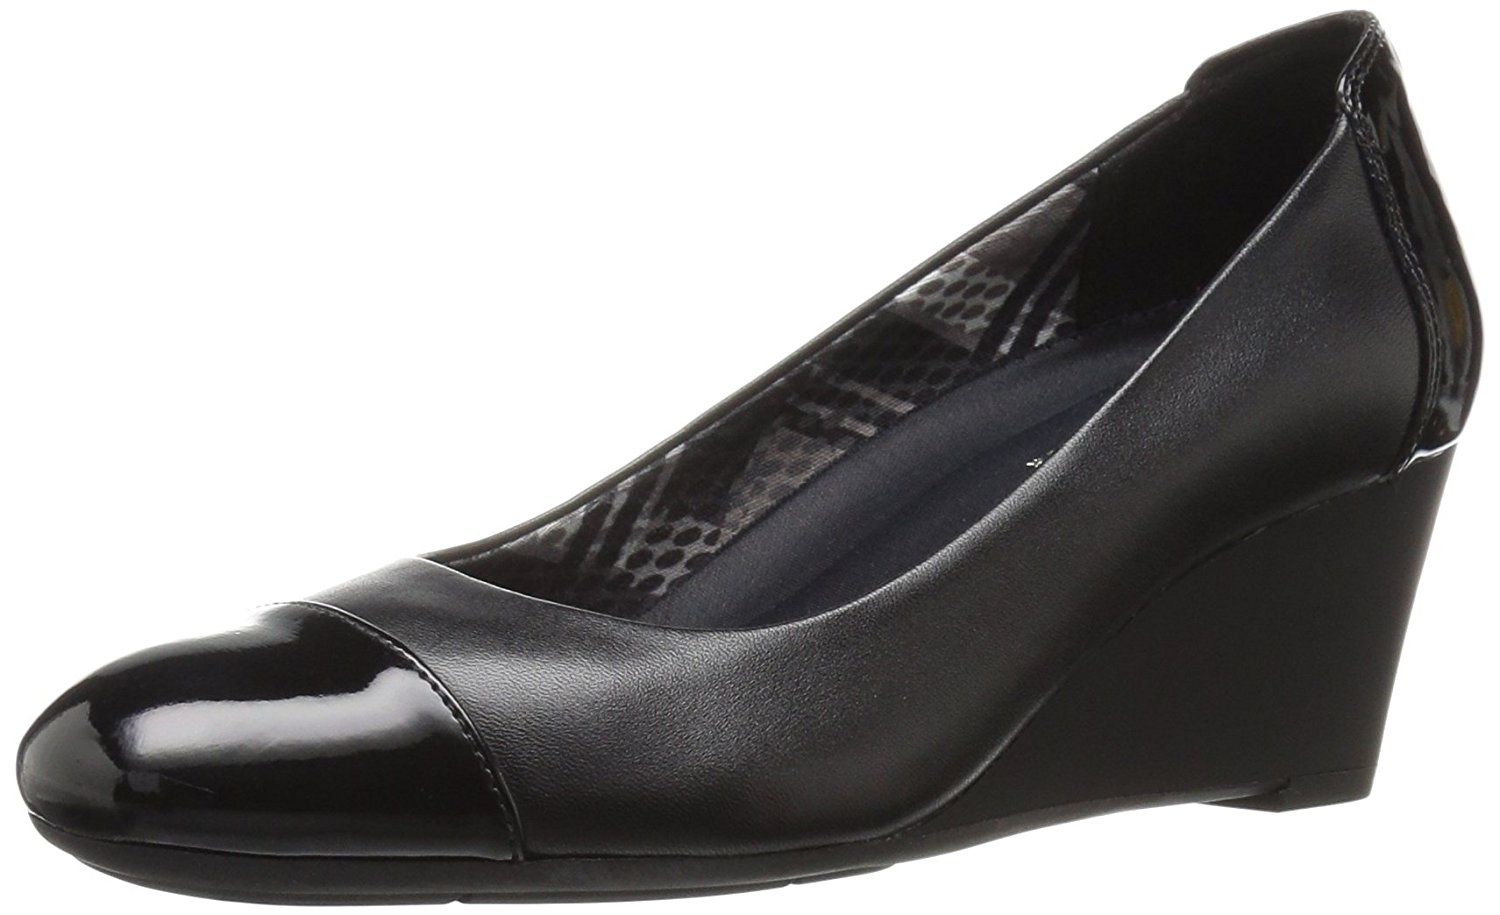 Naturalizer Womens Necile Leather Cap Toe Wedge Pumps by Naturalizer